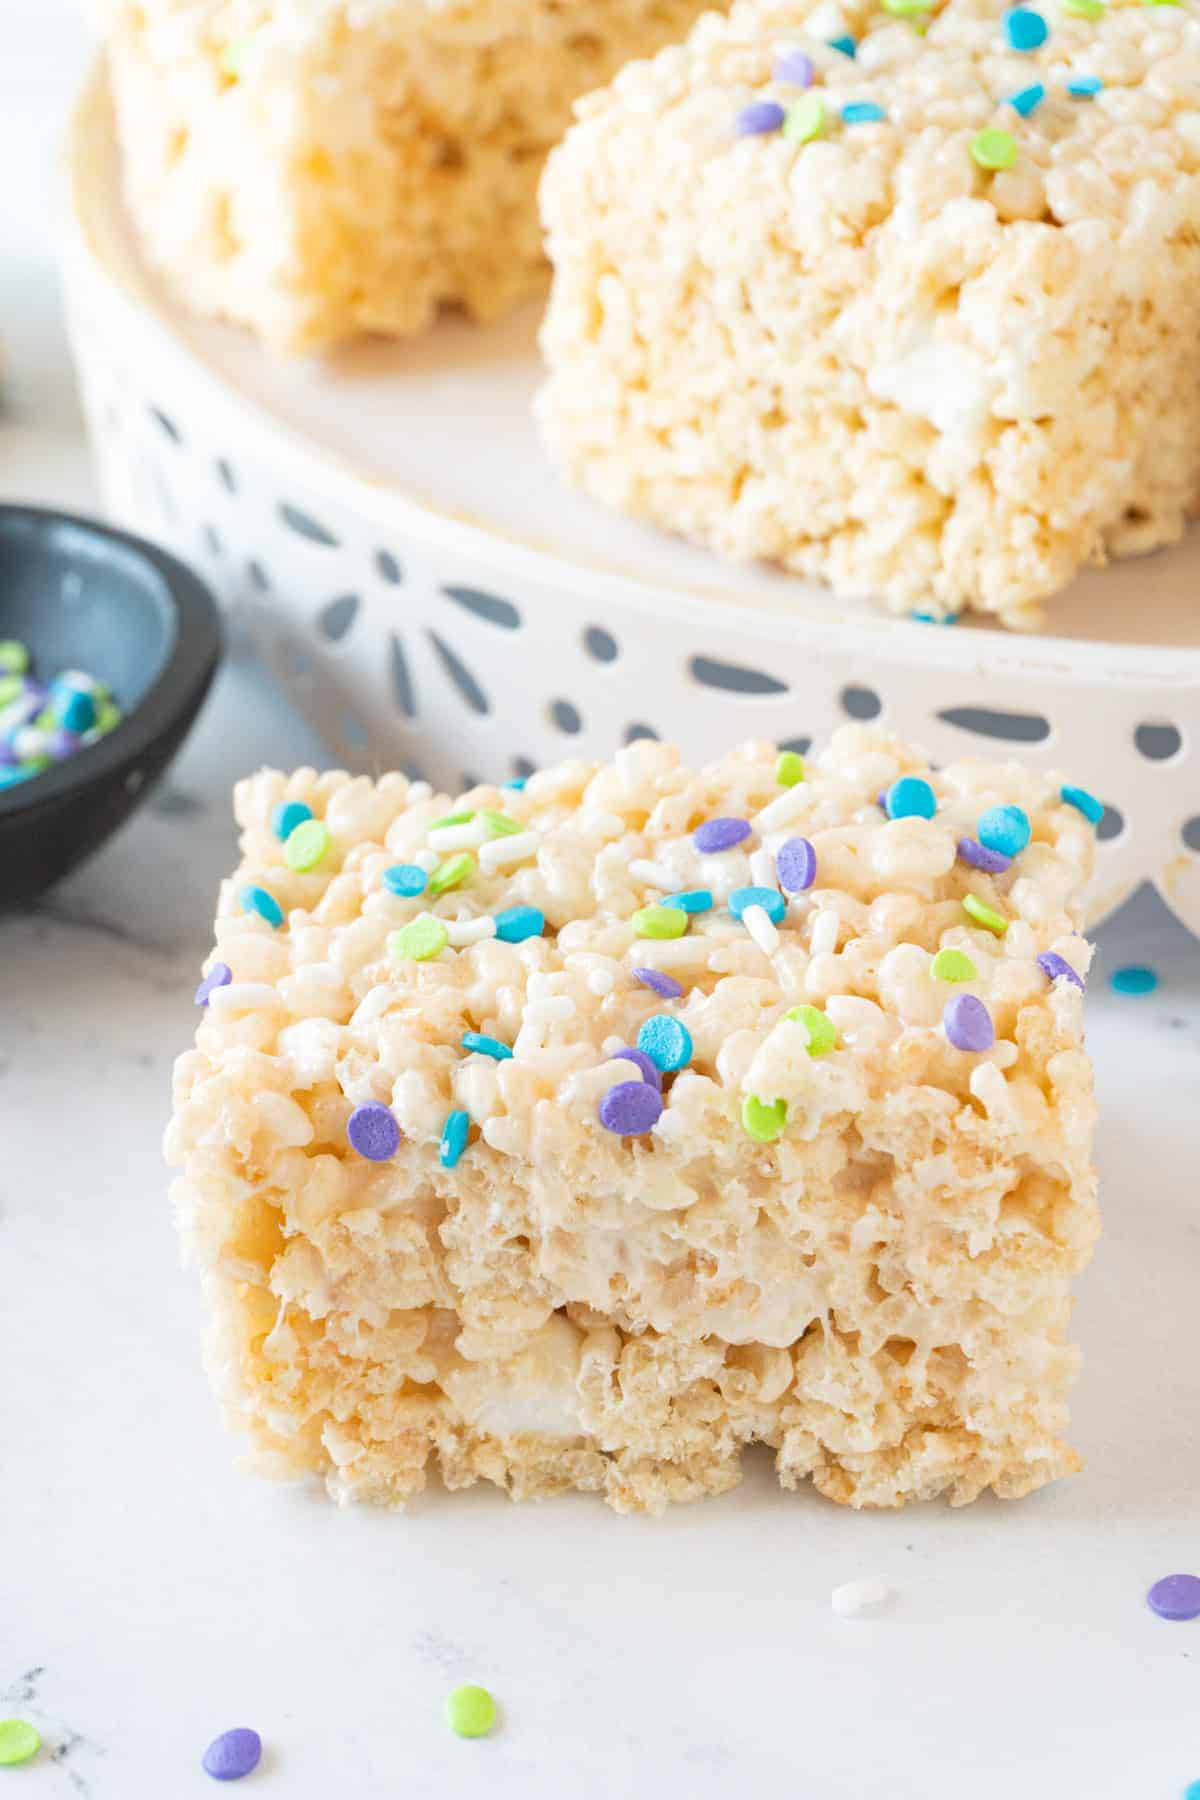 Side view of rice crispy treat to see trhickness and marshmallows in it